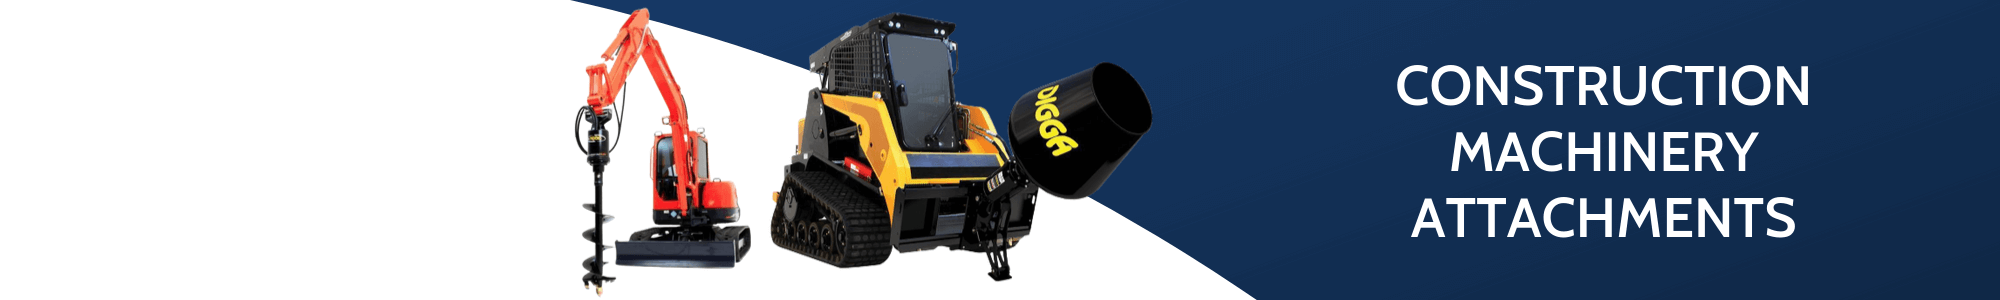 Contruction Machinery Attachments from Ramp Champ